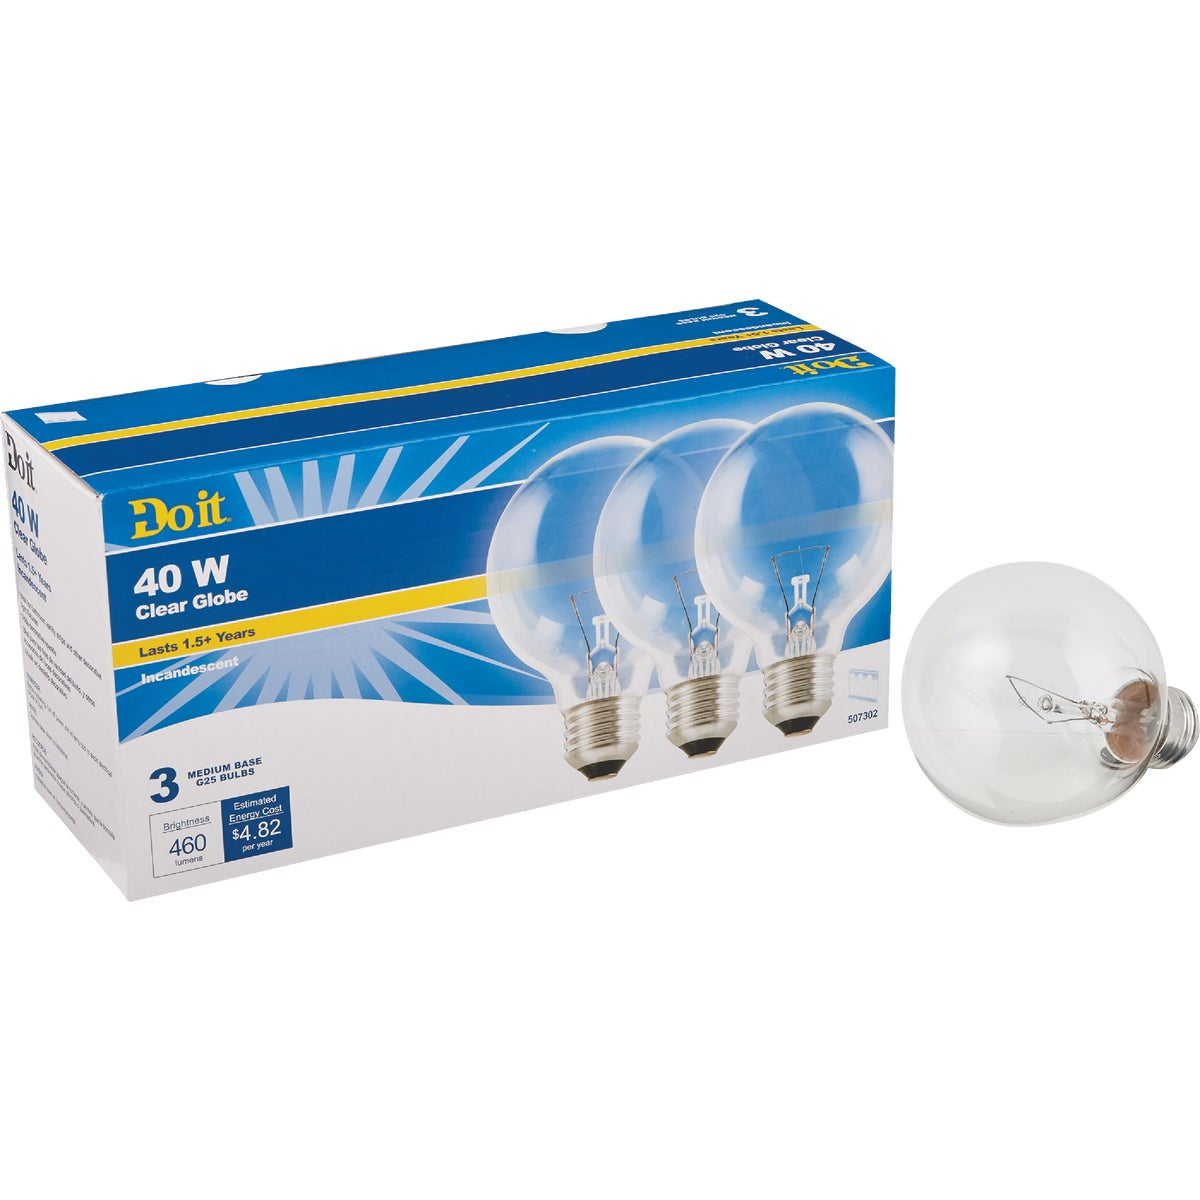 3PK 40W GLOBE BULB - 81611 by G E Private Label